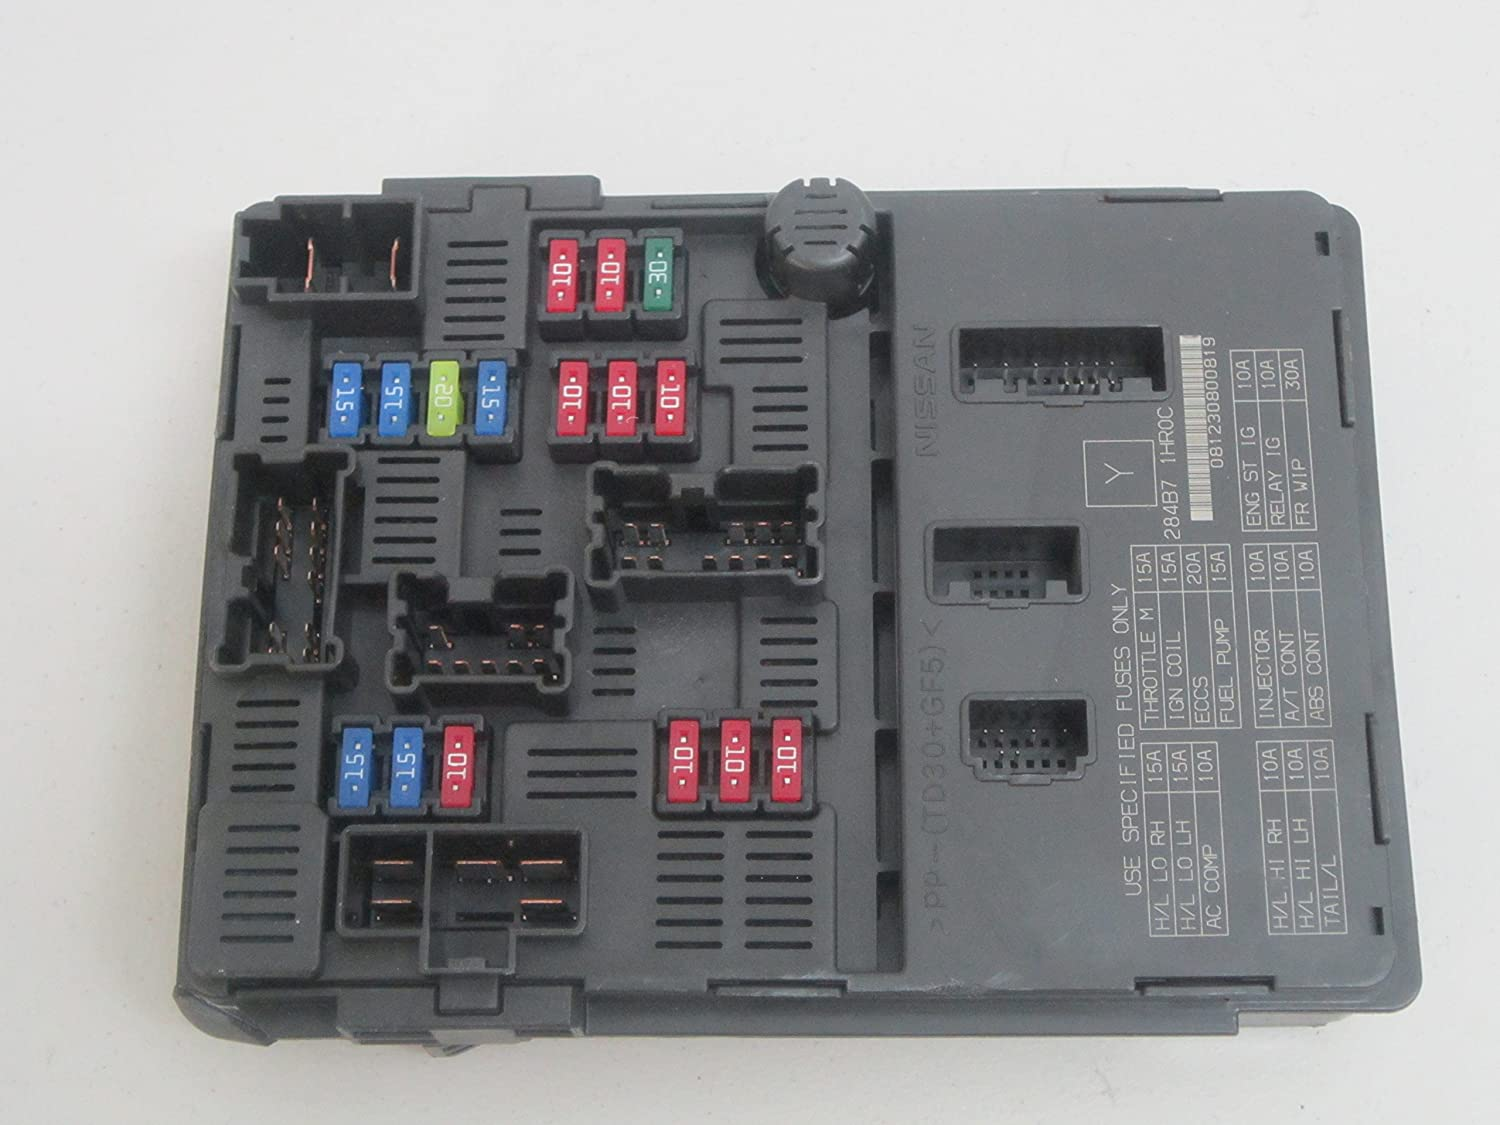 Amazon.com: 12 13 14 NISSAN VERSA FUSE BOX BODY CONTROL PP-TD30-GF5: Car  Electronics